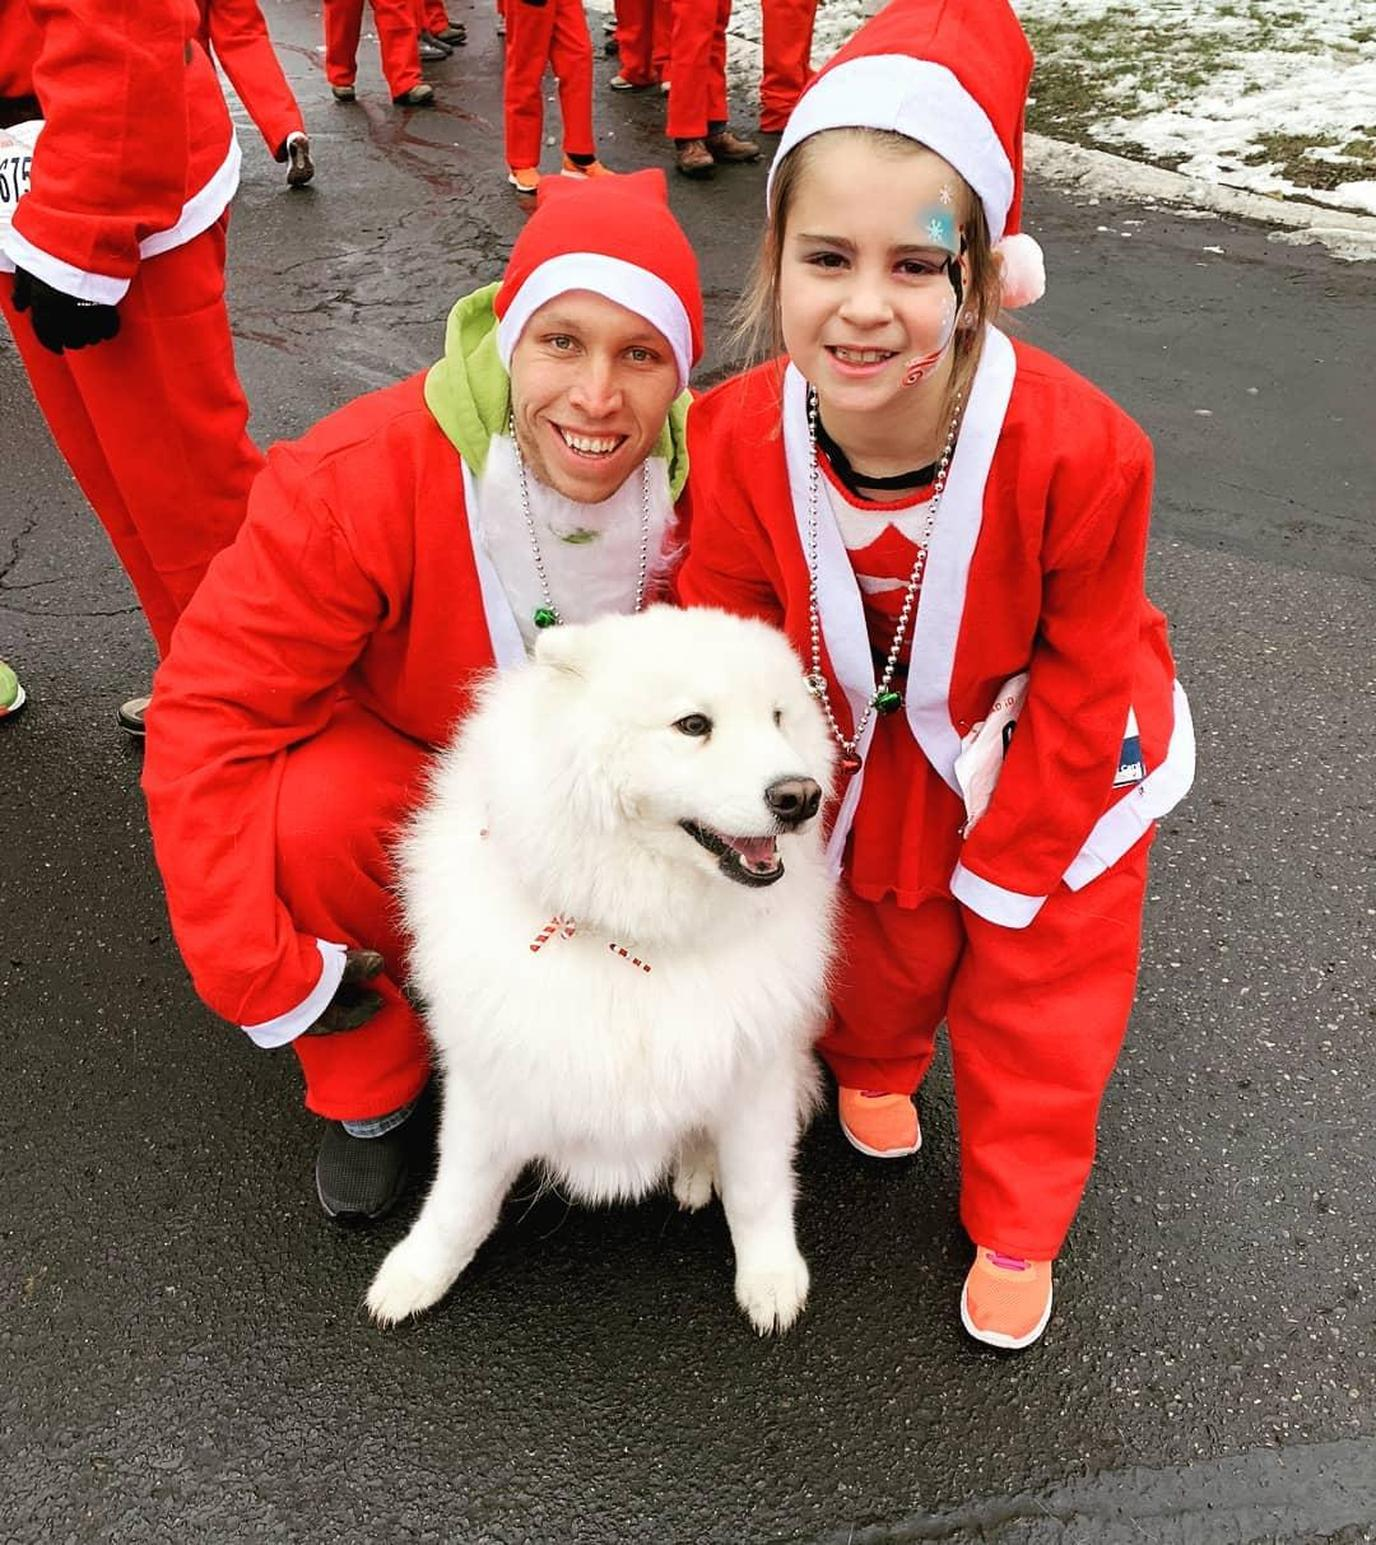 A Man and Girl Dressed as Santas Pose With a Dog at a Pet-Friendly Christmas Race in Michigan.